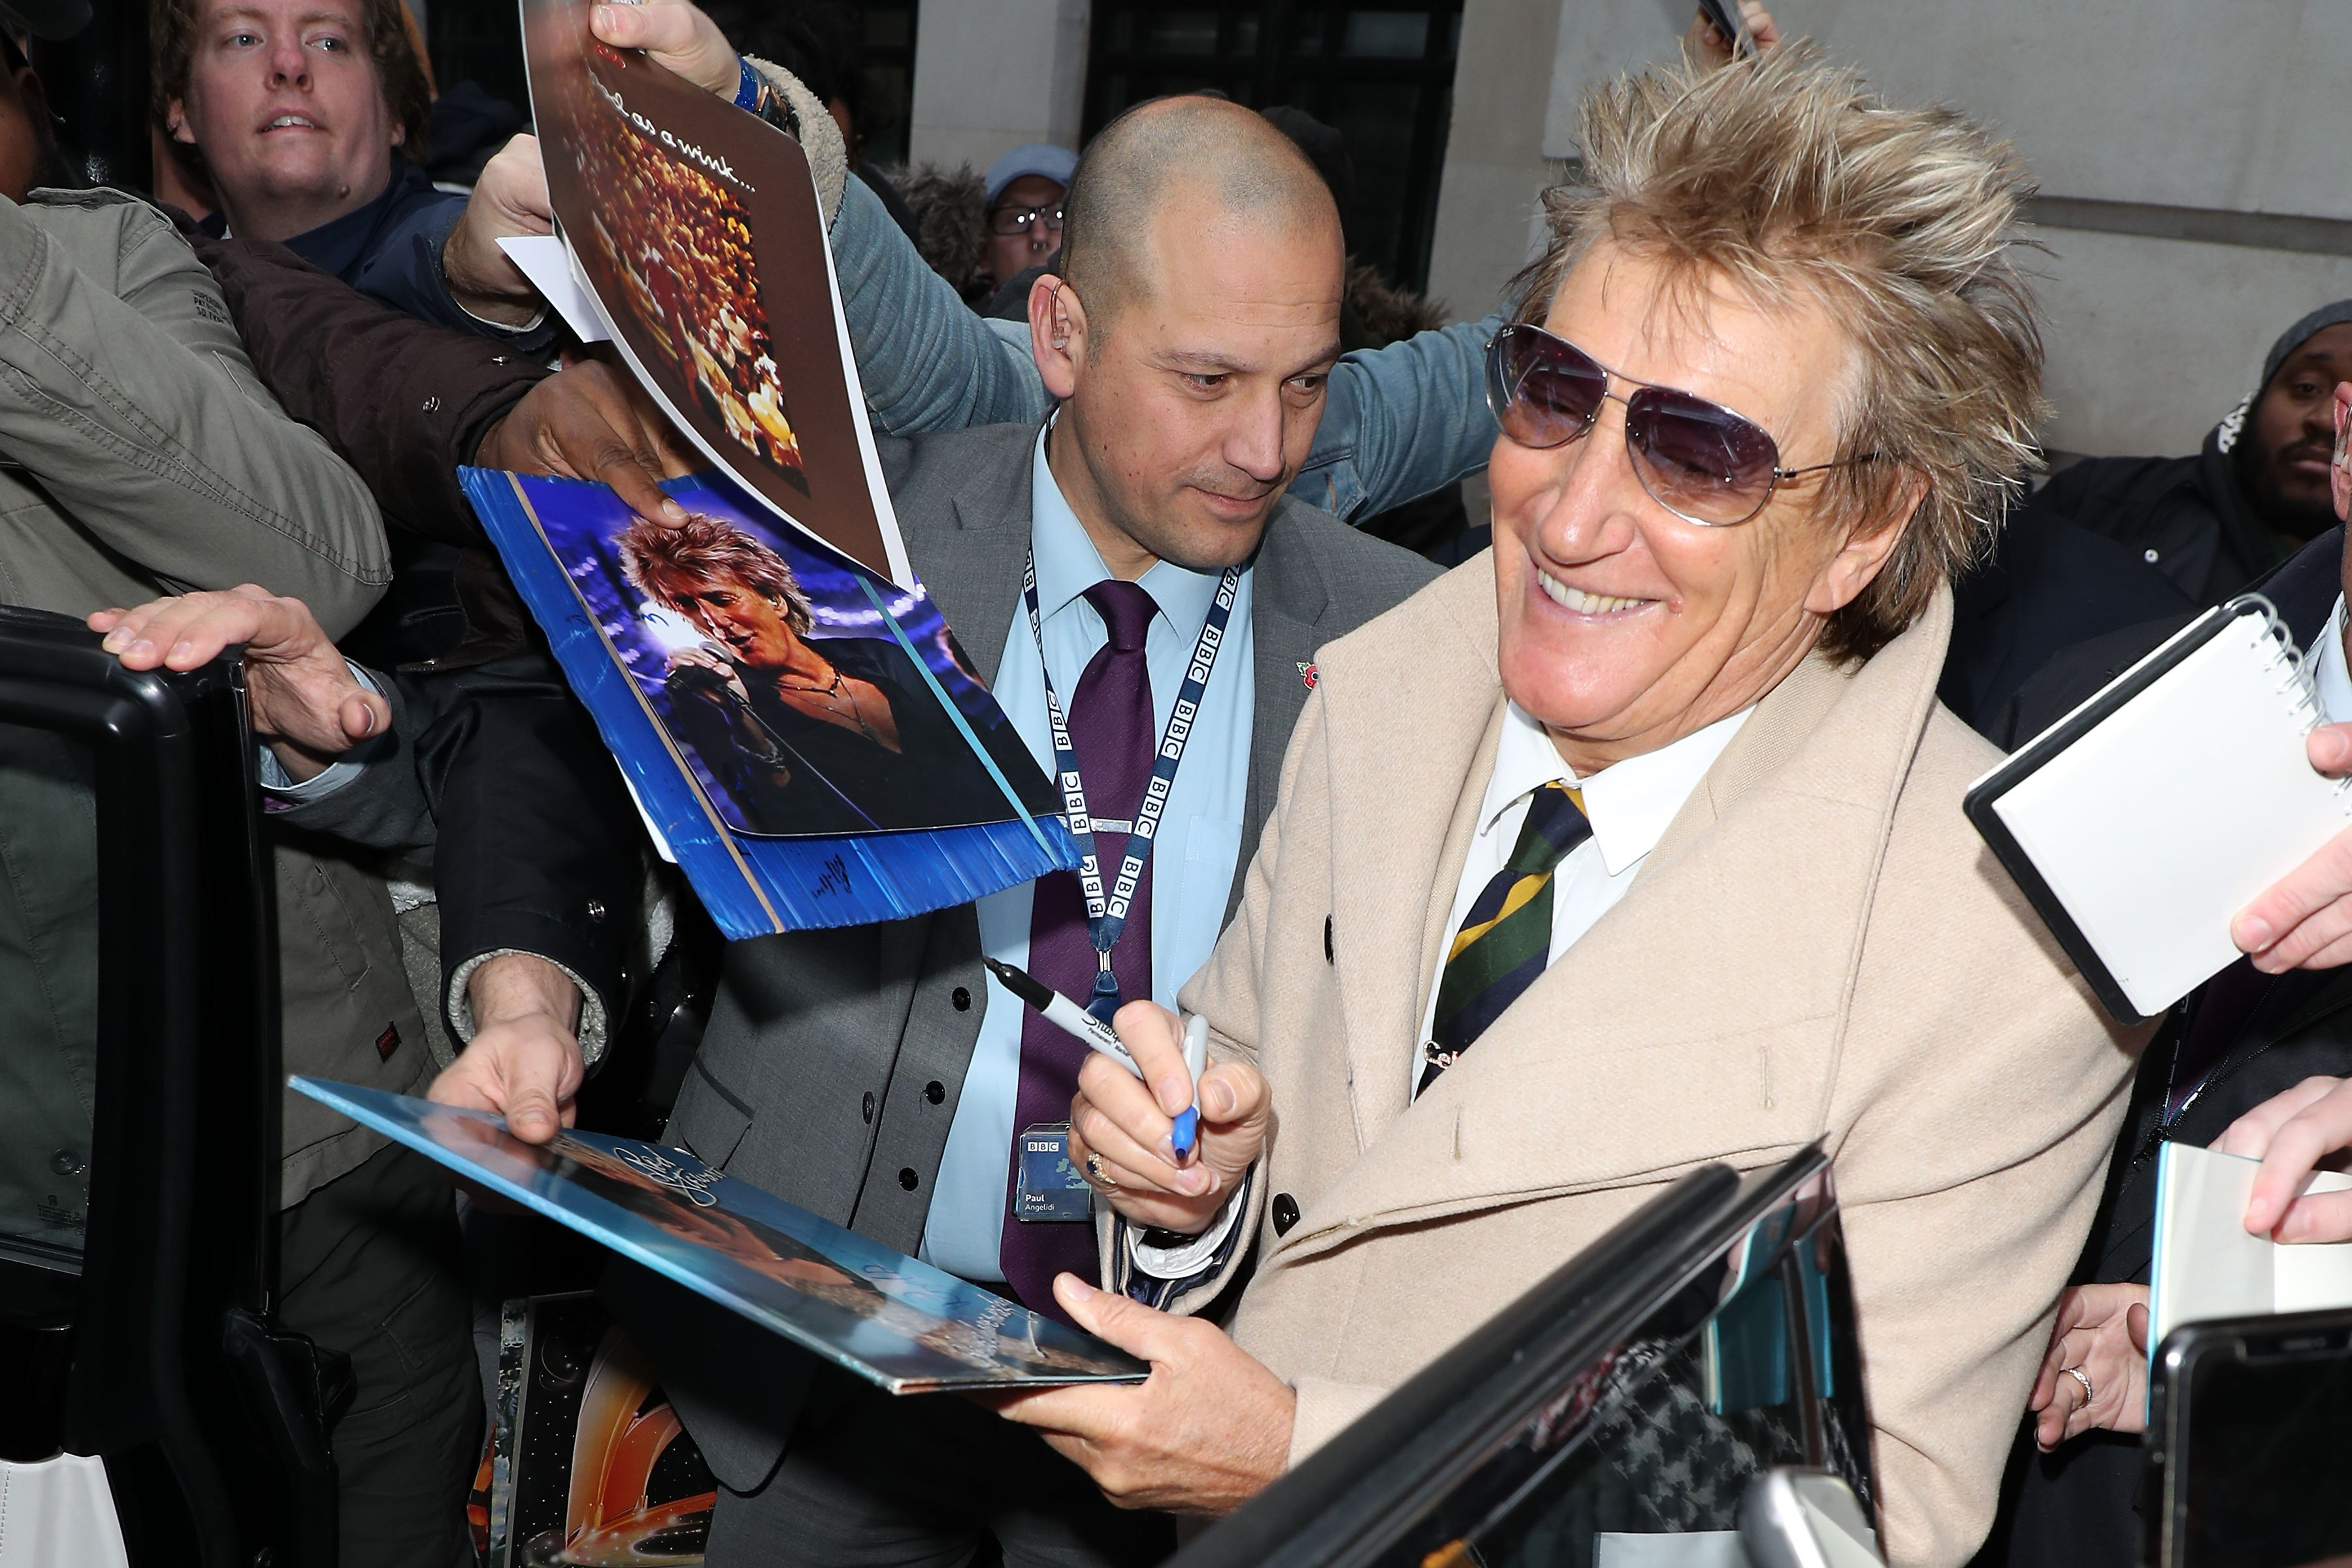 Rod Stewart and His Outfit Are Having the Time of Their Lives